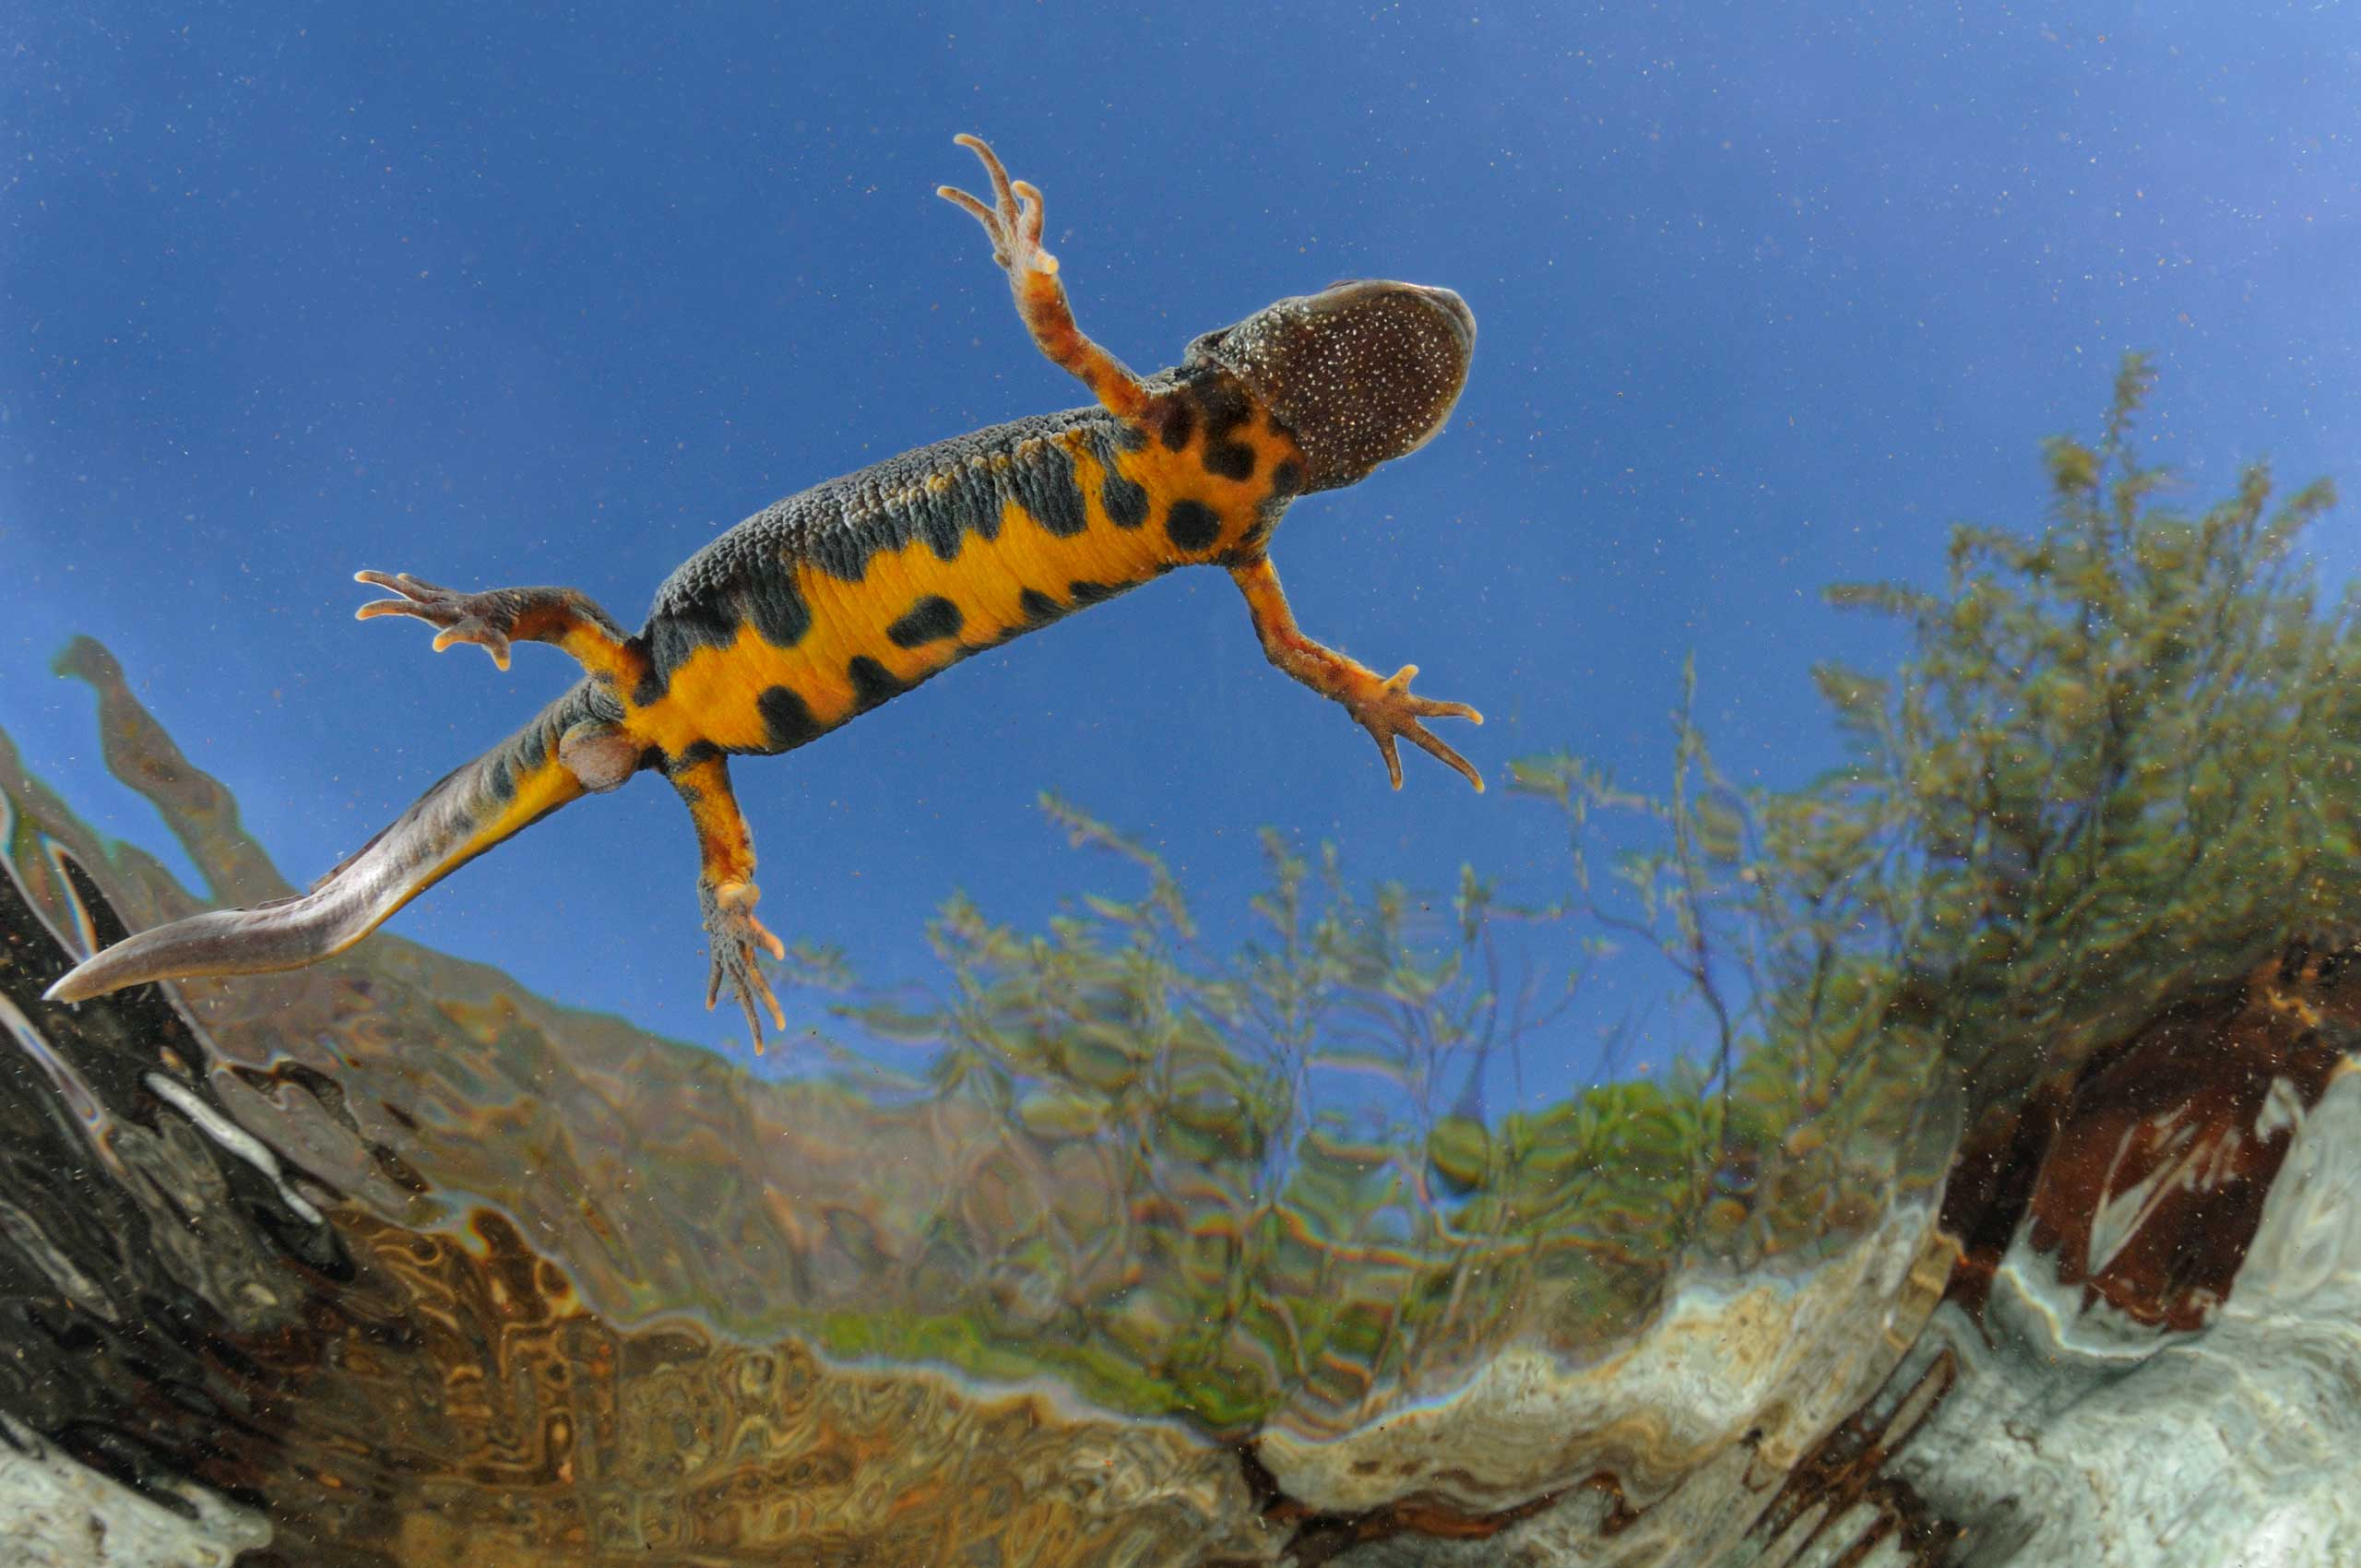 An adult female Italian crested newt stationed below the fresh water surface in Piedmont, Italy.